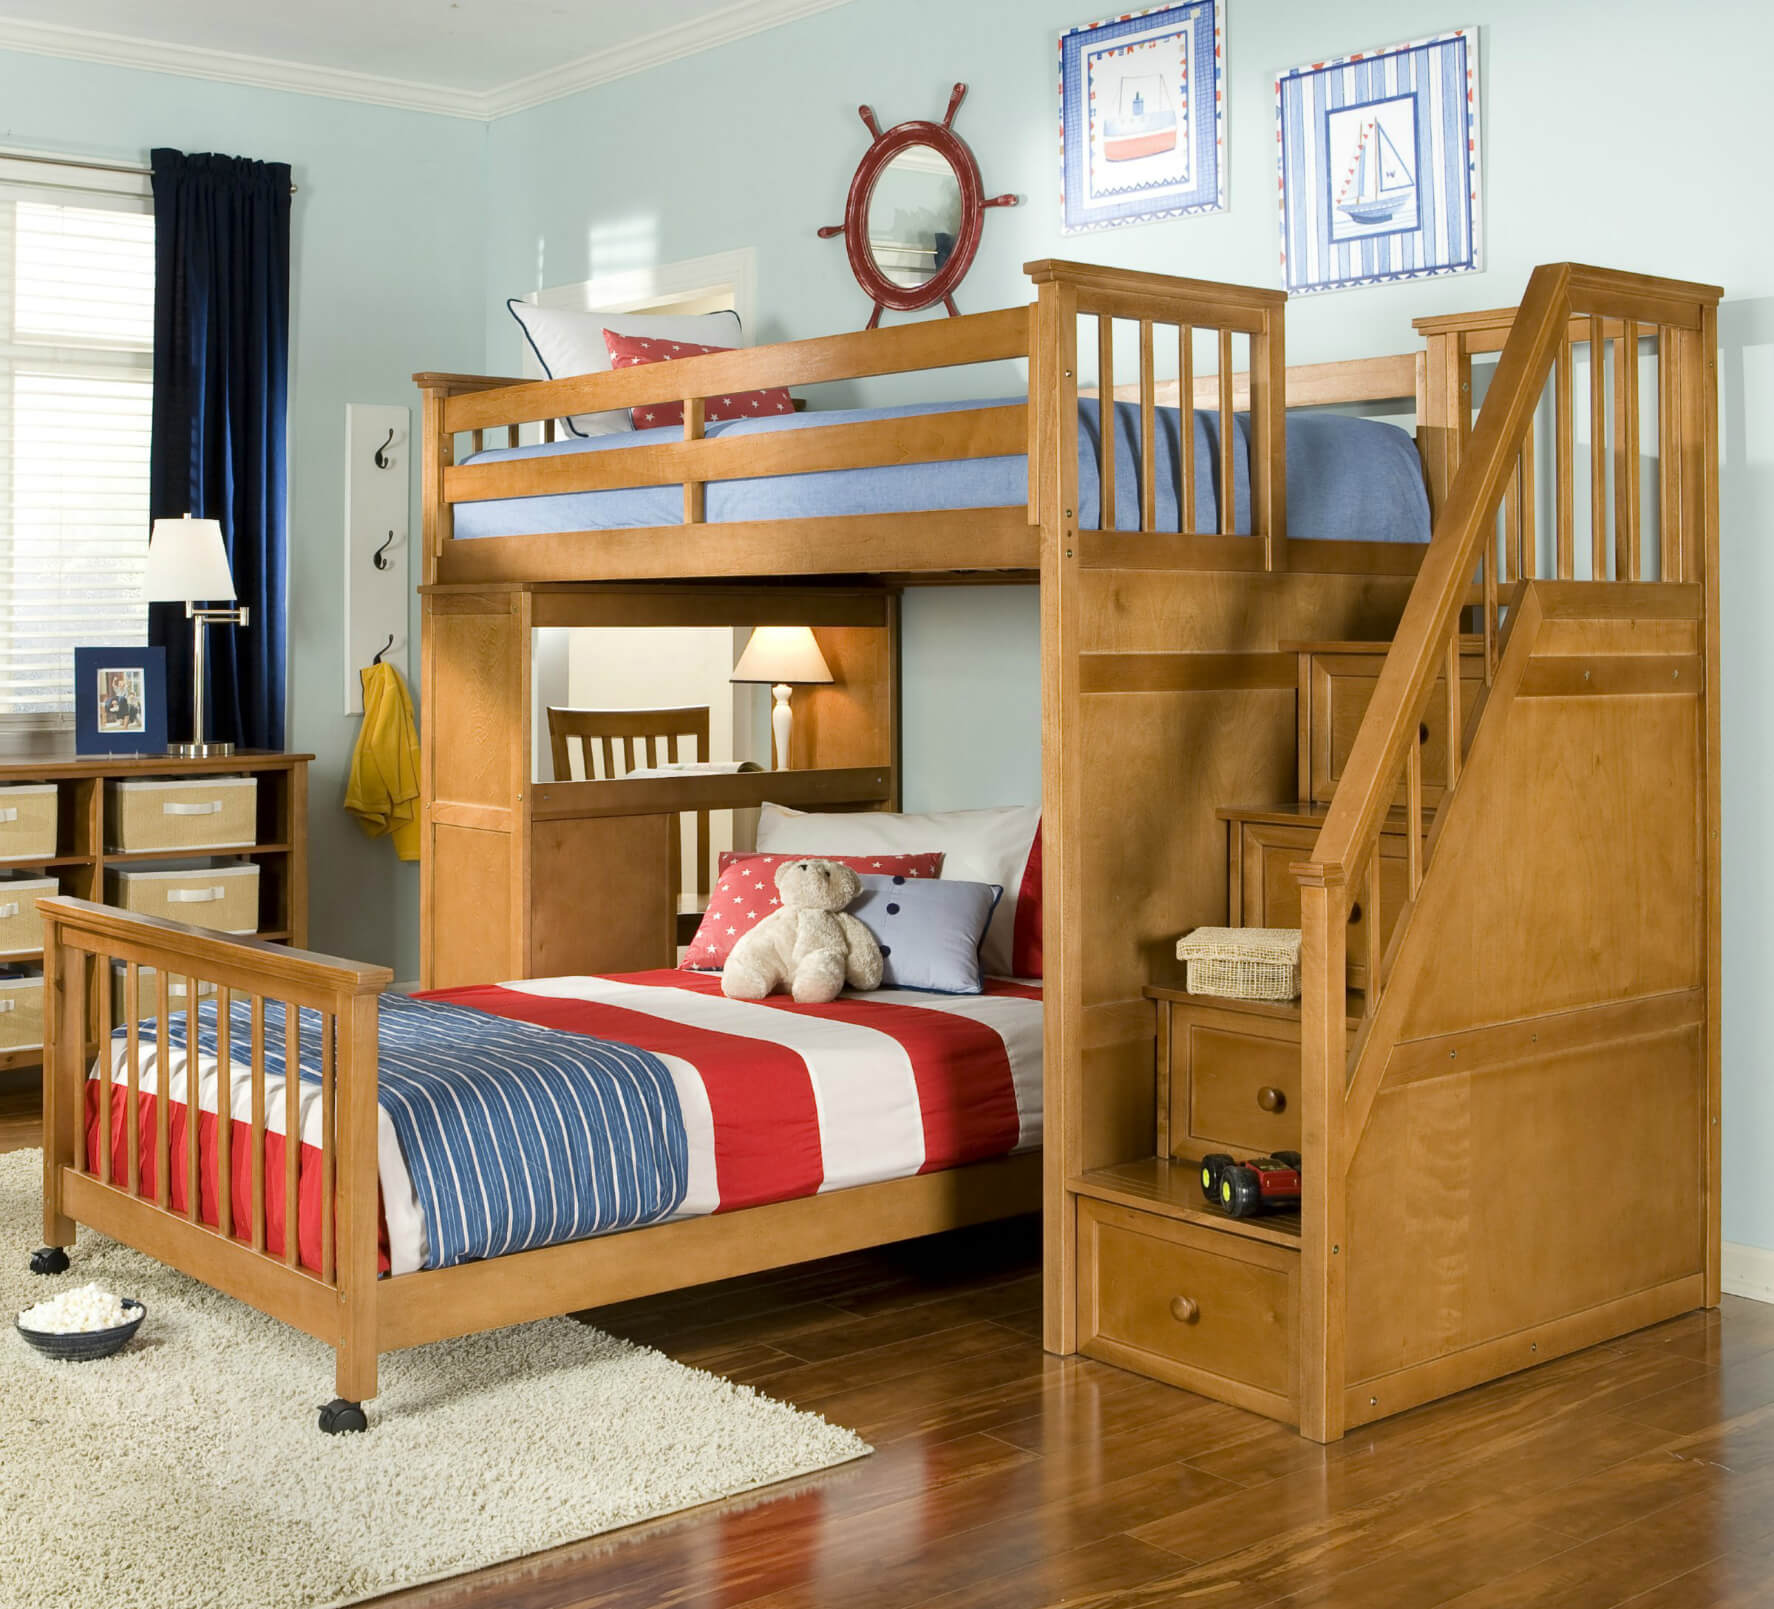 top wooden lshaped bunk beds (with spacesaving features) - pecan hardwood lshaped bed includes a staircase and desk lower bed (can